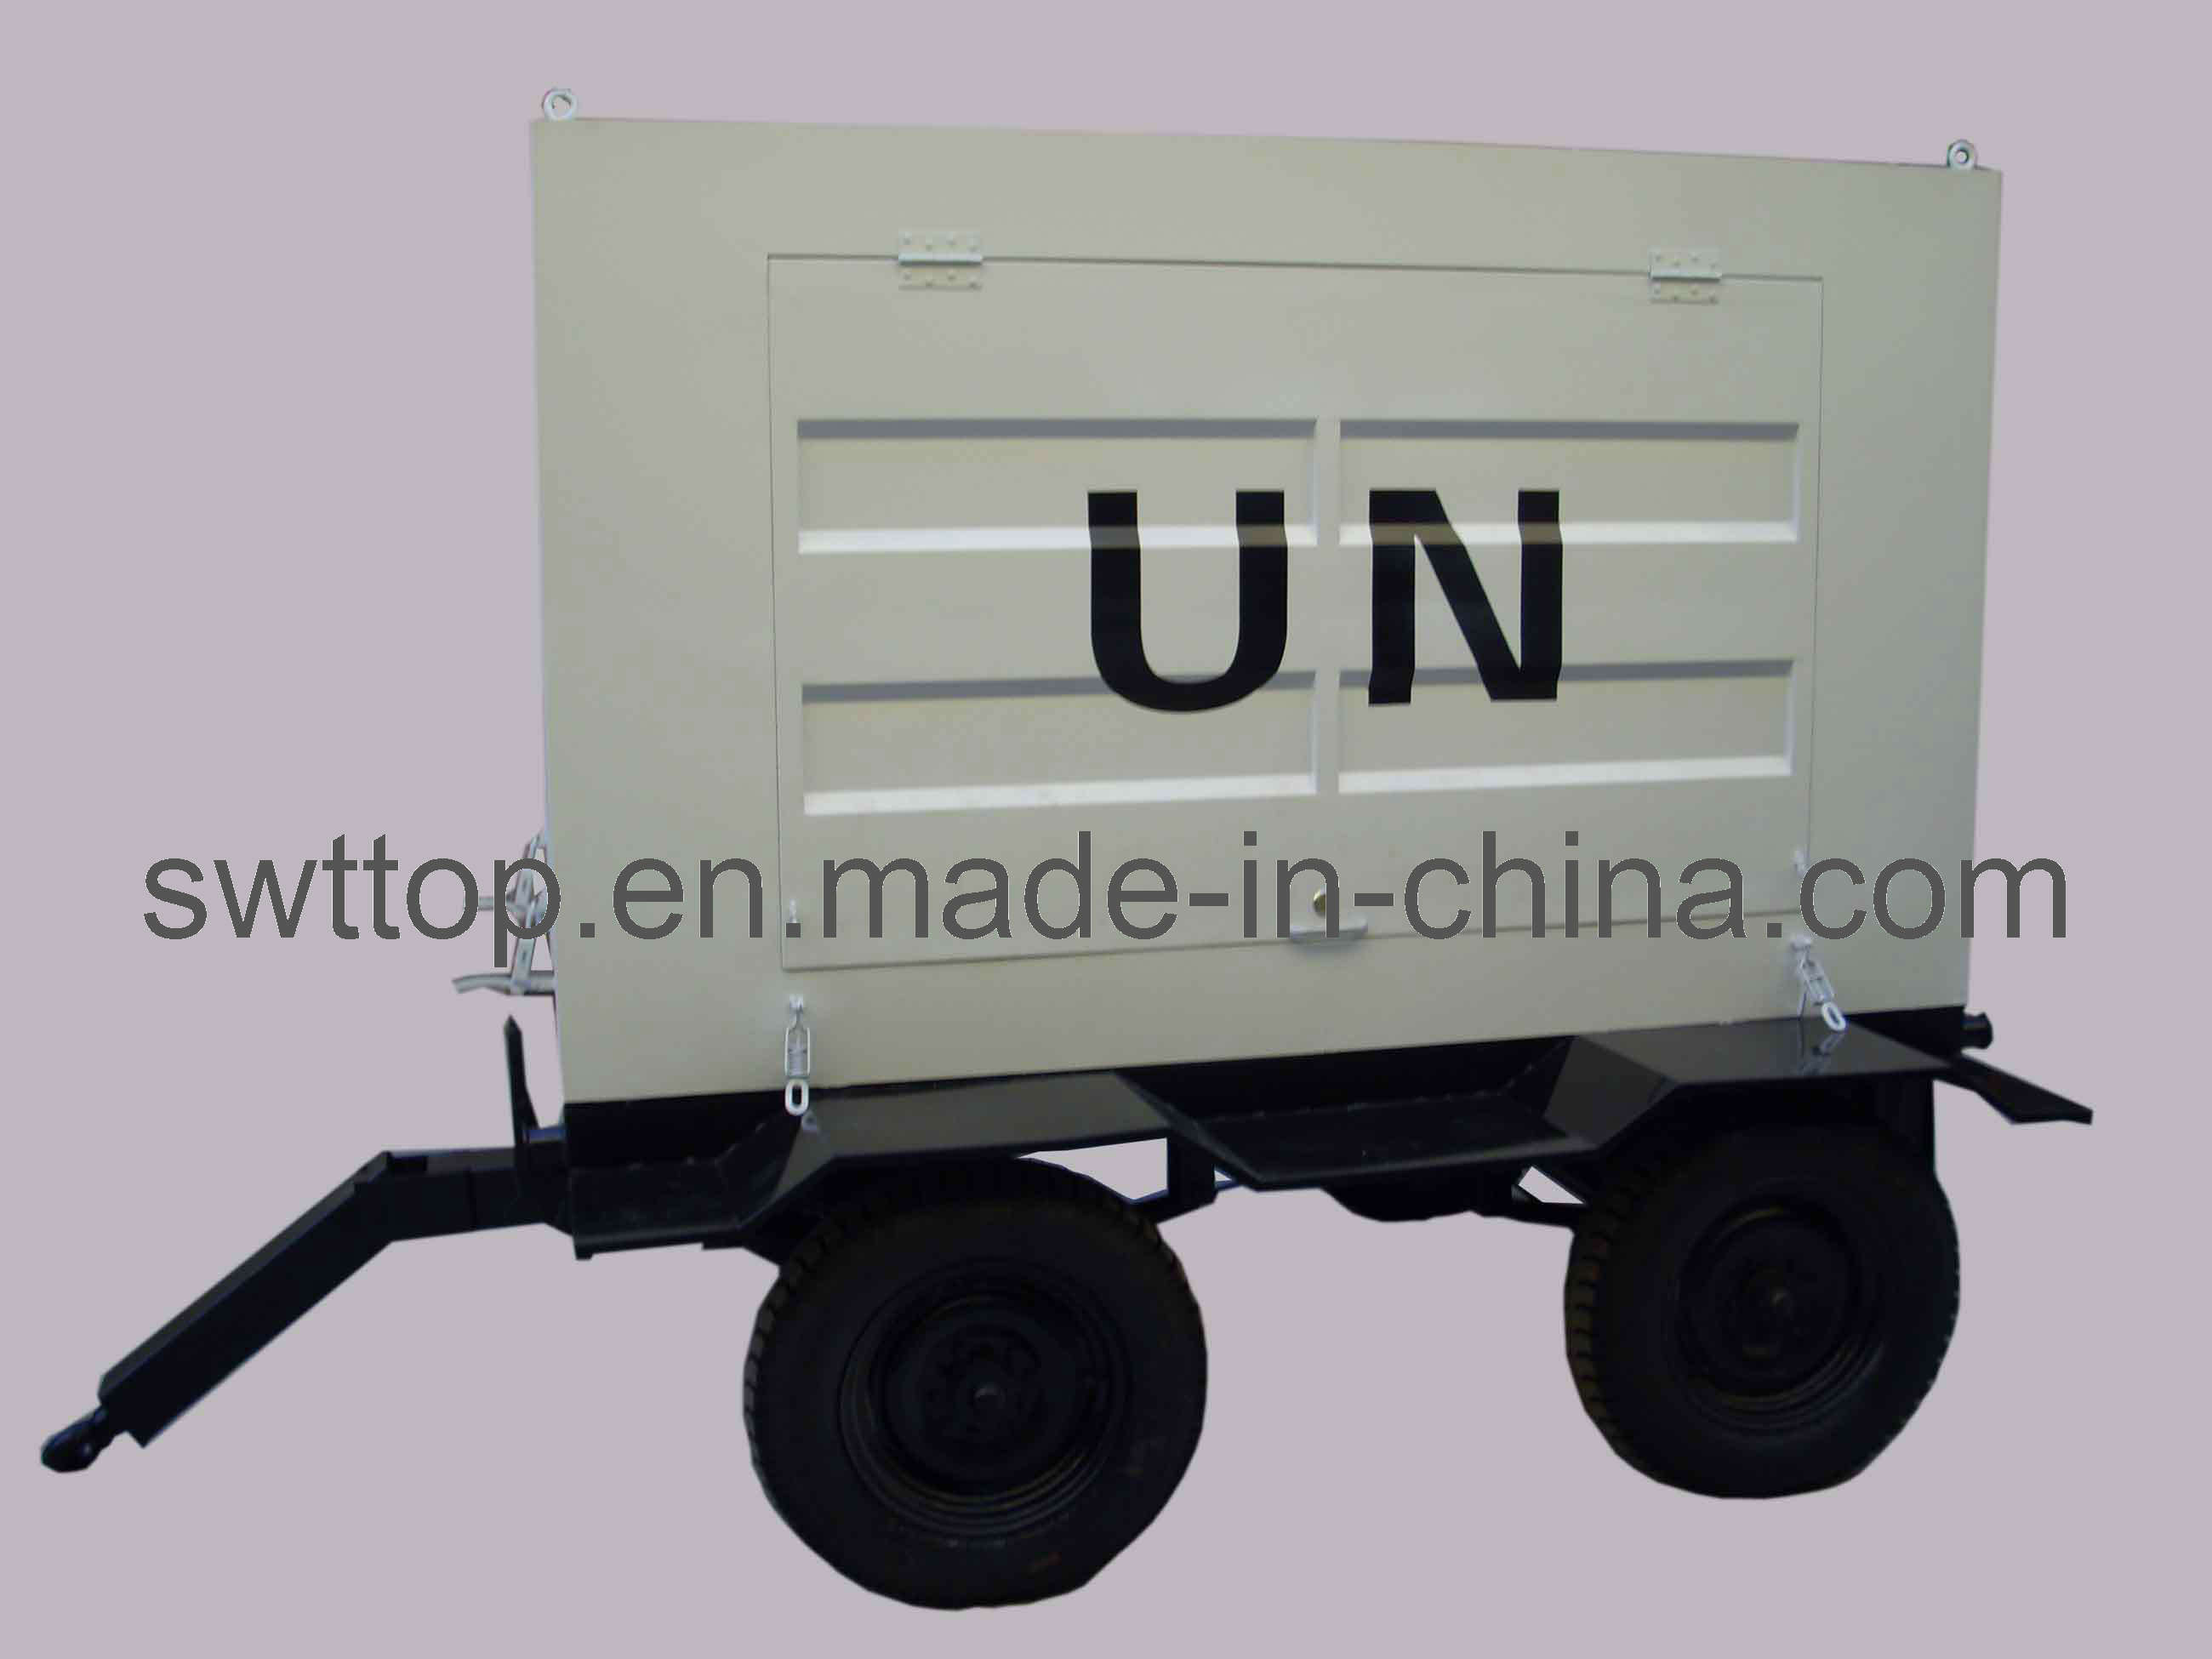 2016 New Design Cheap Price of 300kVA Trailer Permanent Magnet Generator Diesel Generator for Sale From Manufacturer Direct Sale in China